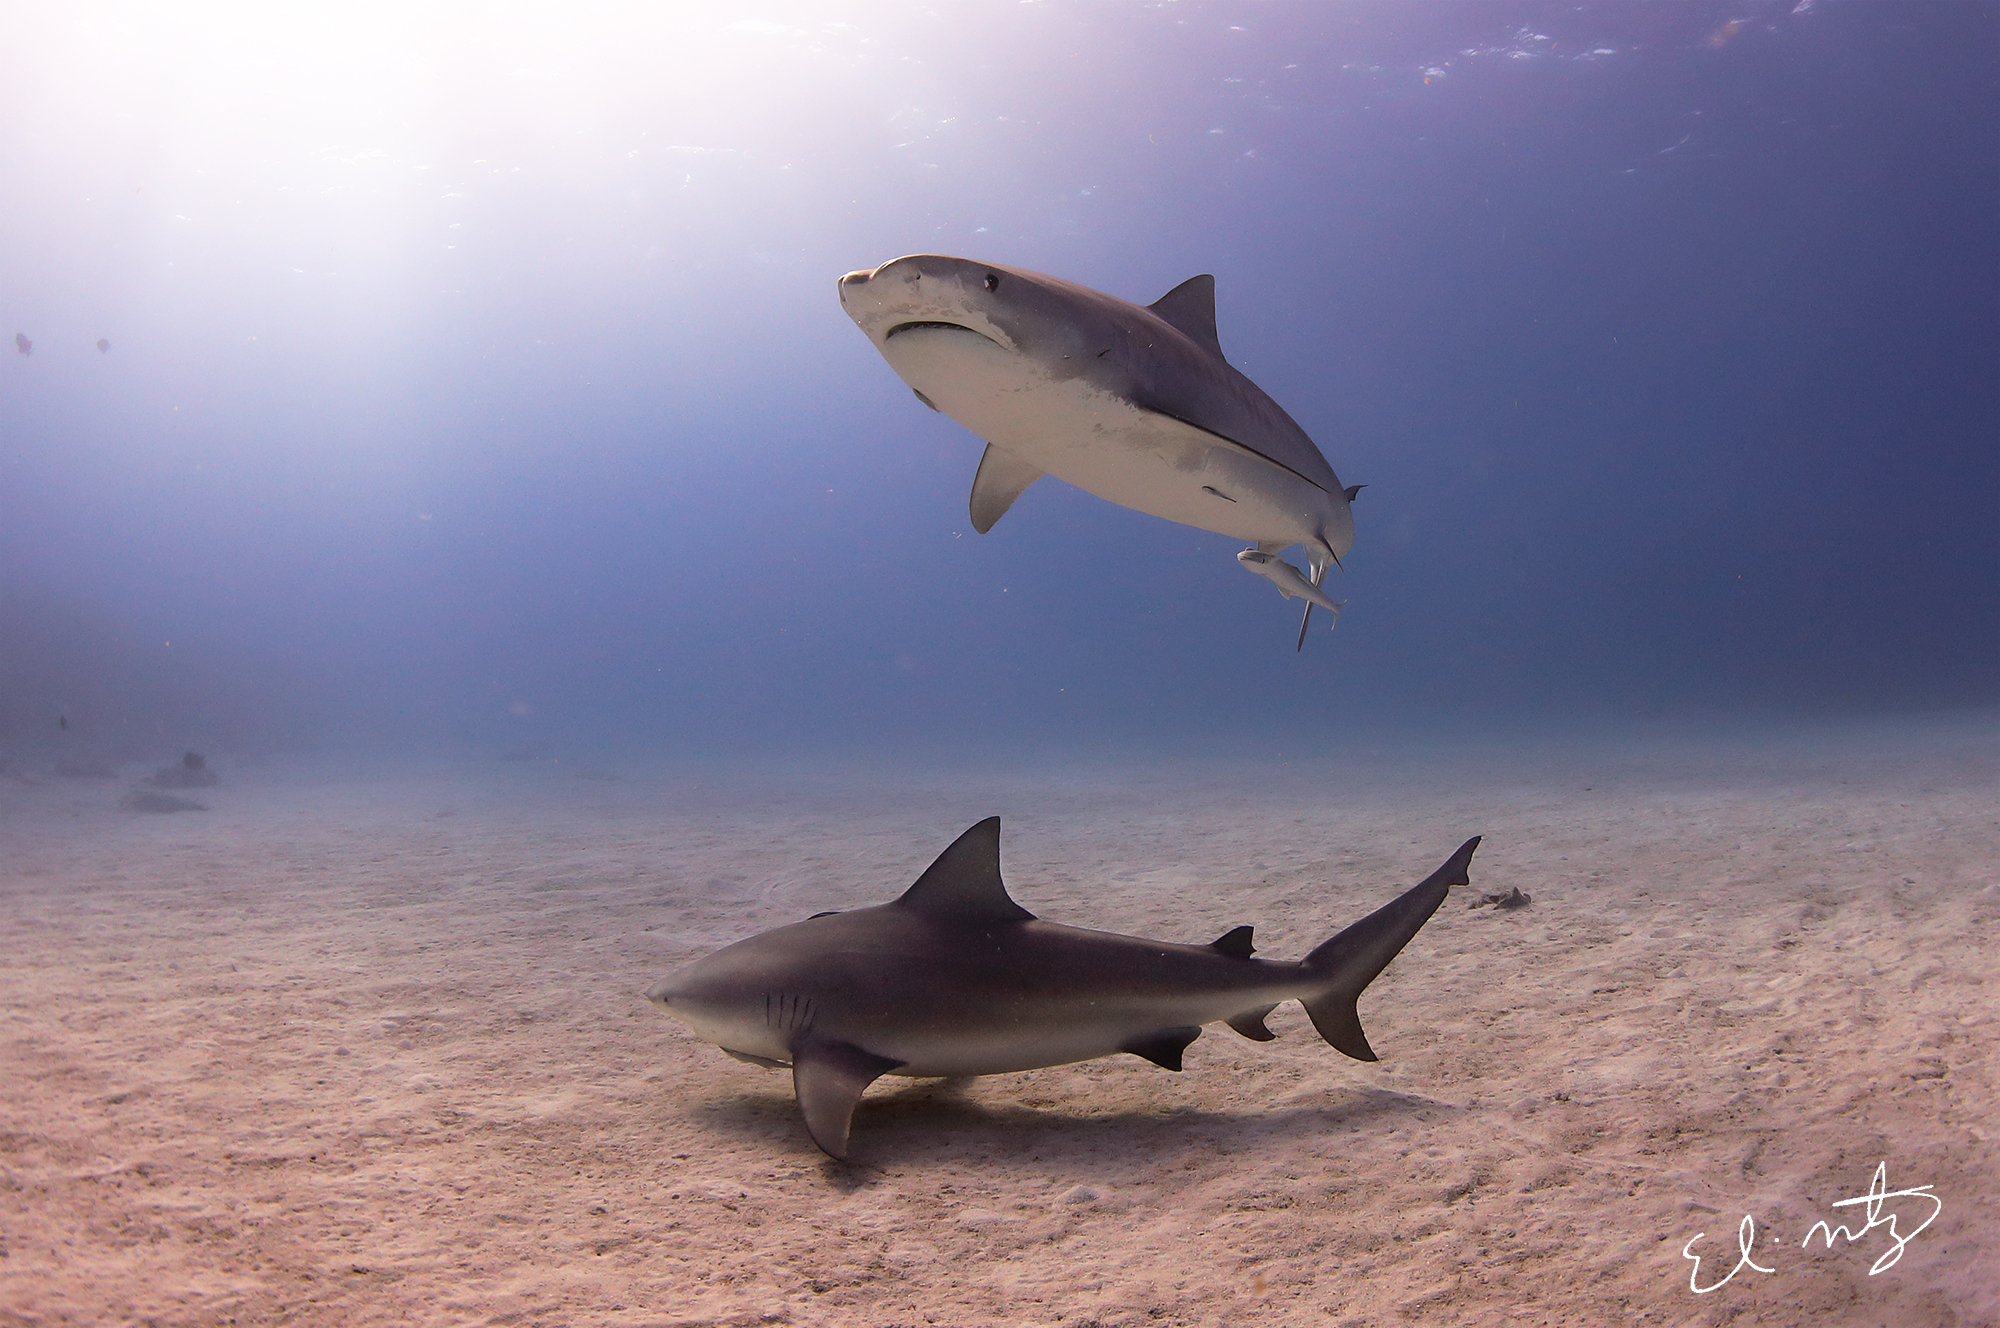 Jitterbug and a bull shark